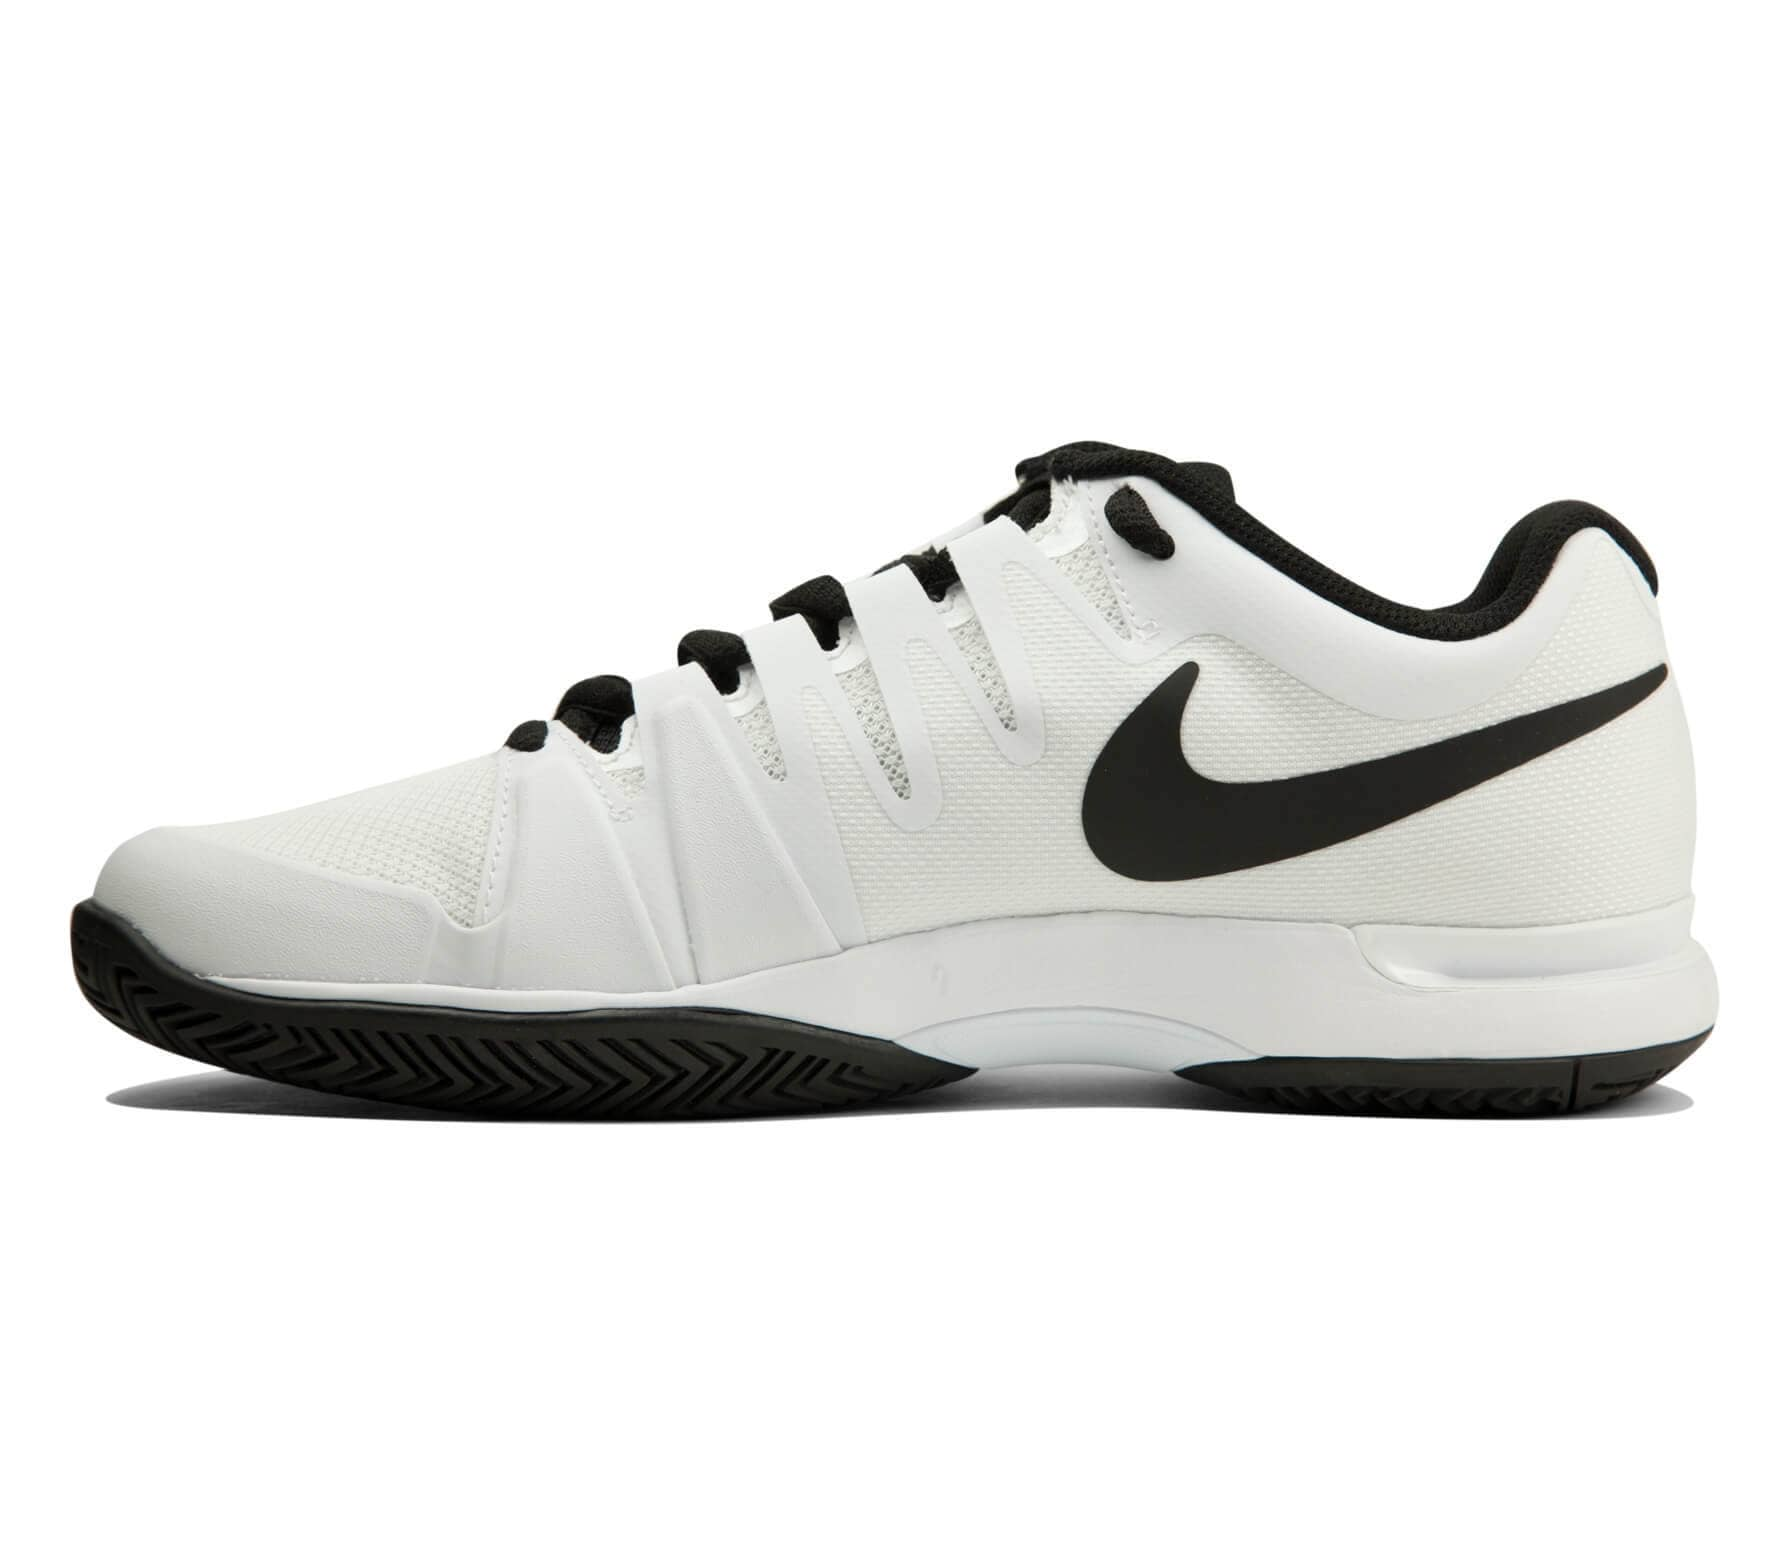 Nike - Zoom Vapor 9.5 Tour men s tennis shoes (black white) - buy it ... e3550d64f1db